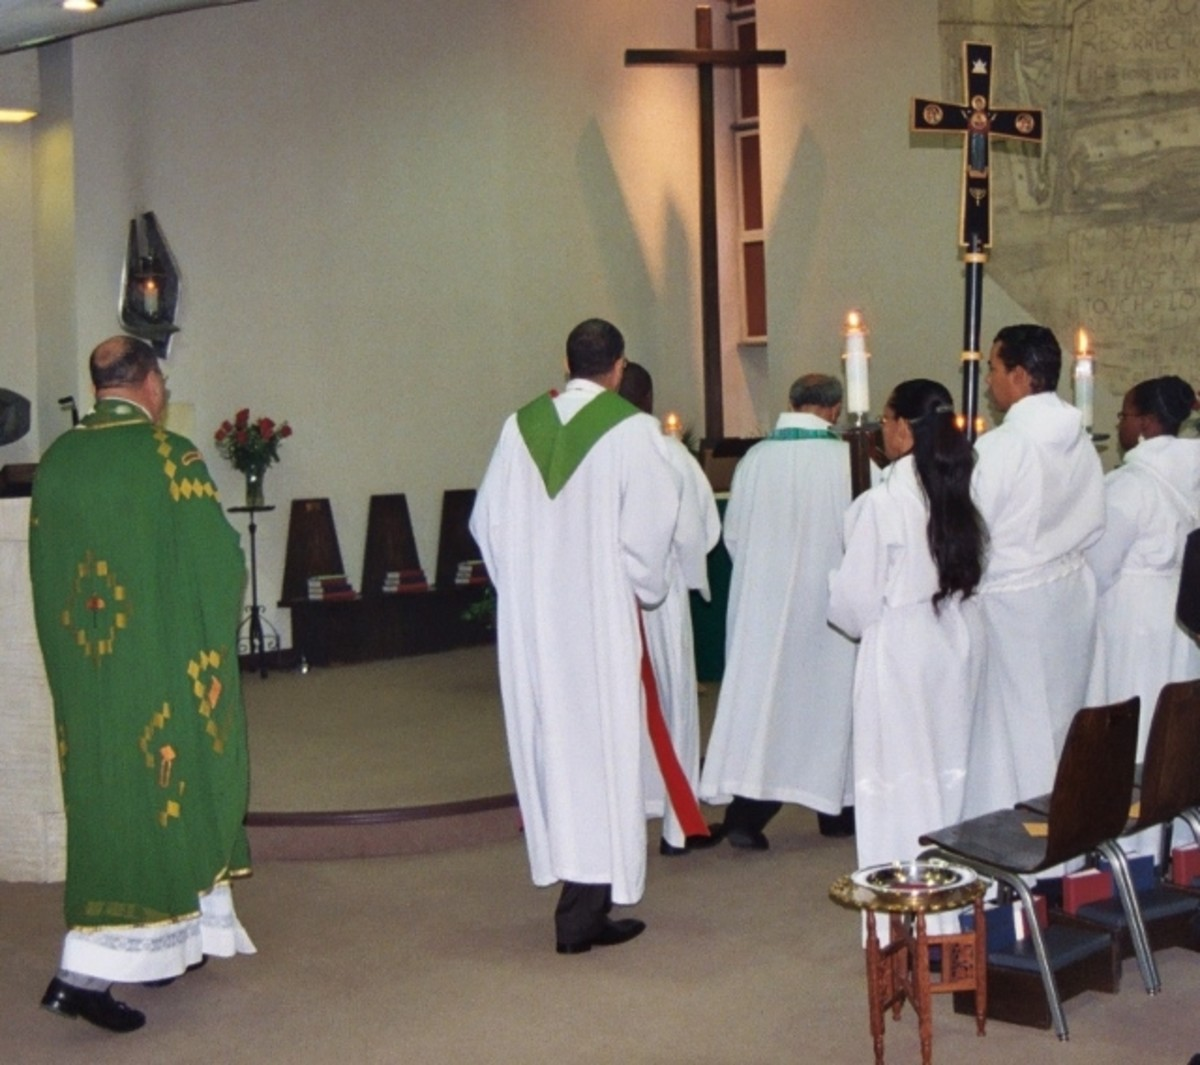 Celebrants and acolytes approach the altar to begin a special service at Saint George's in Washington, DC.